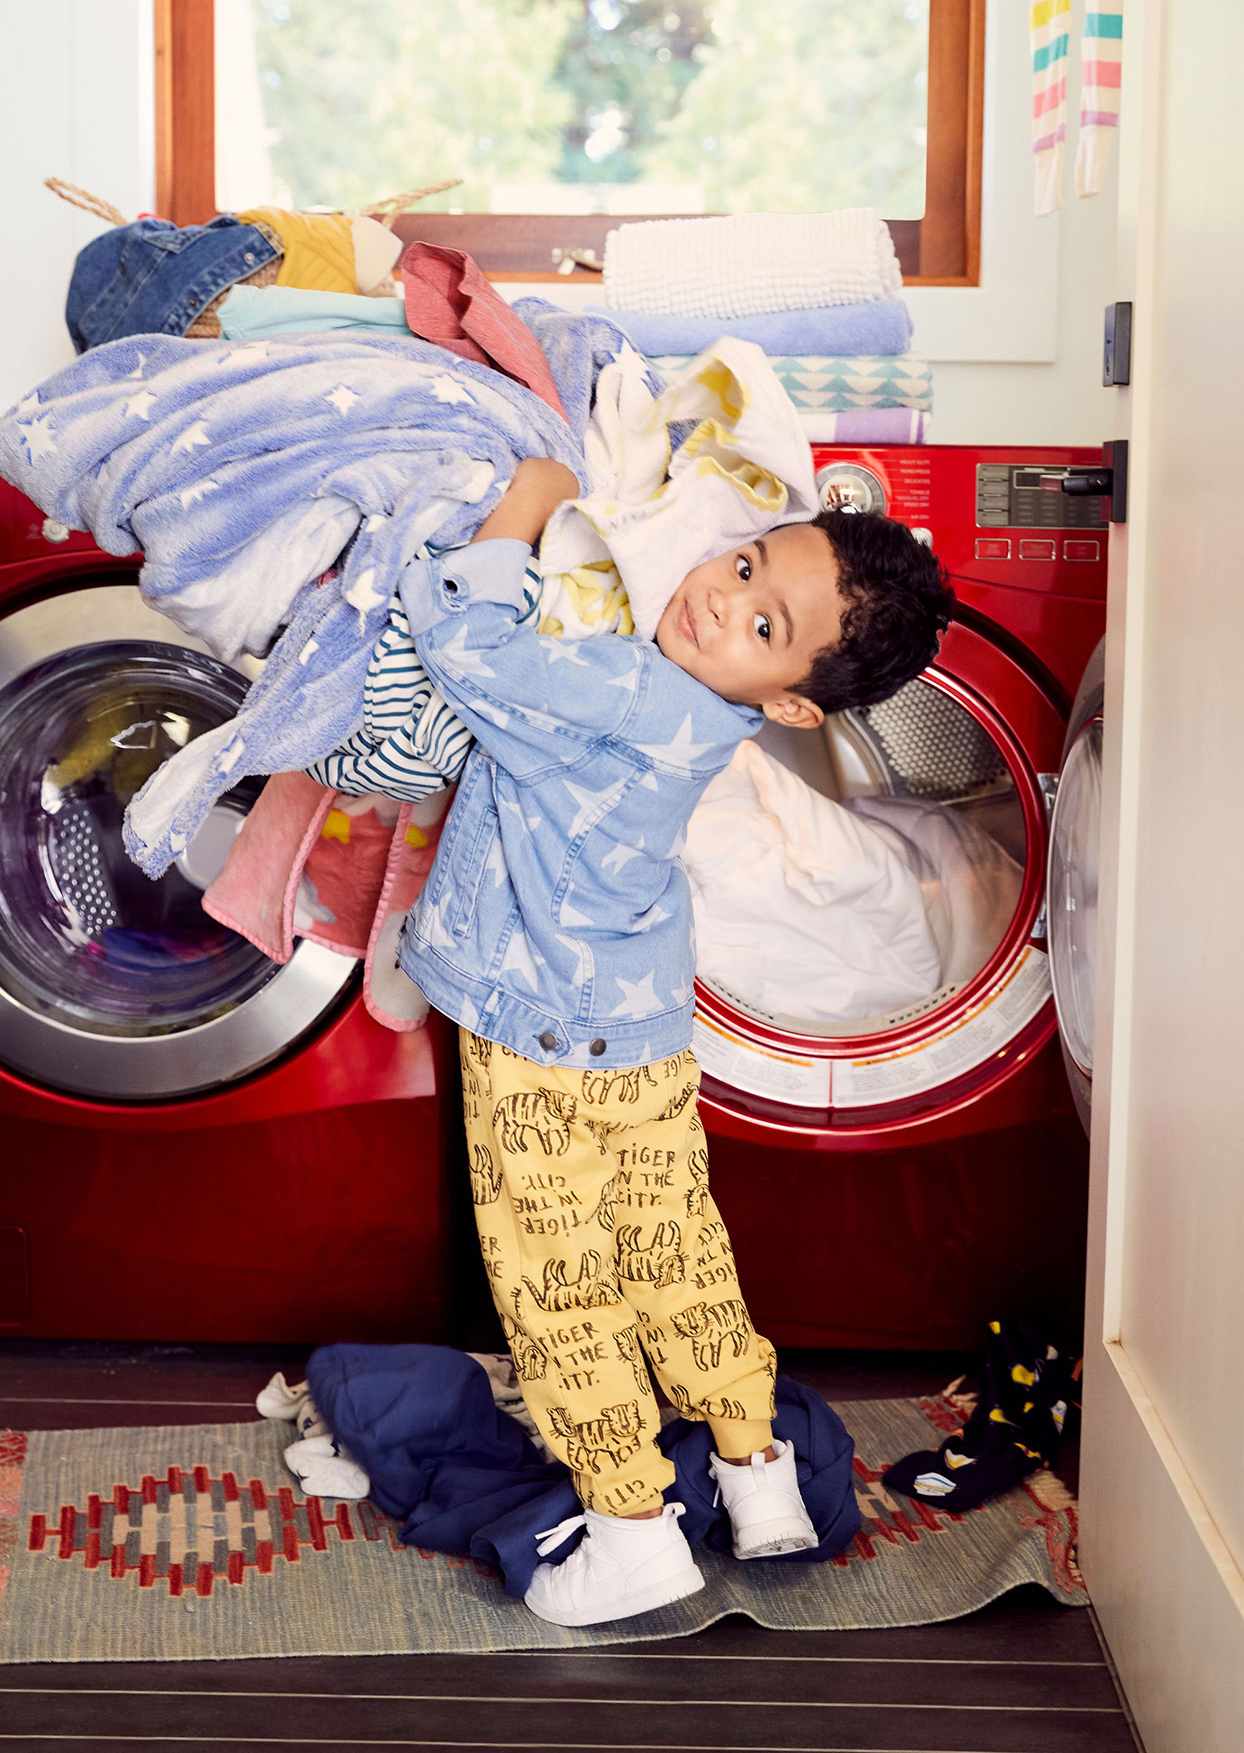 child holding pile of laundry